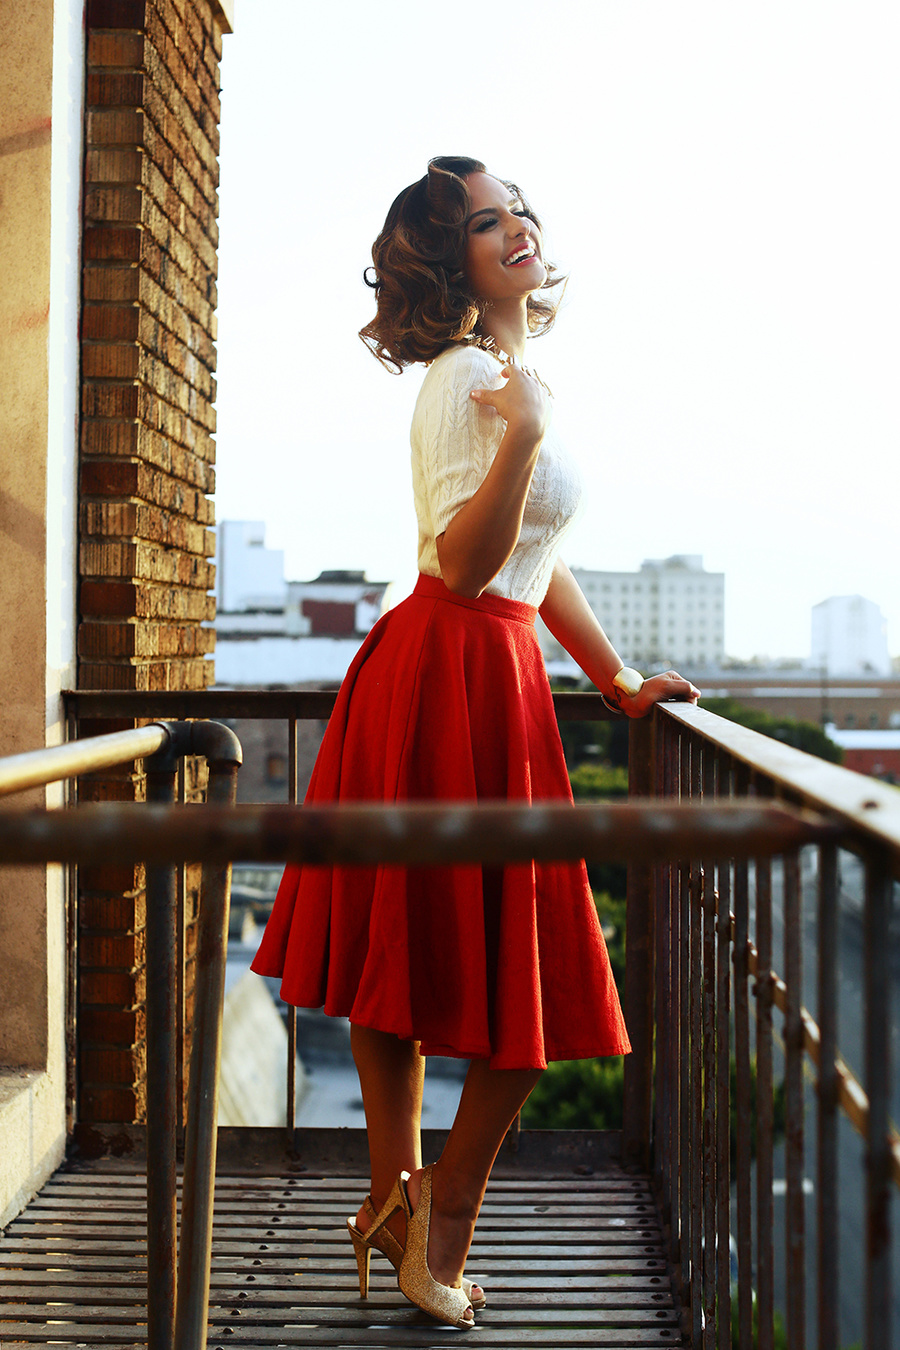 Pia Toscano in red full skirt and white top Photography By Solmaz Saberi